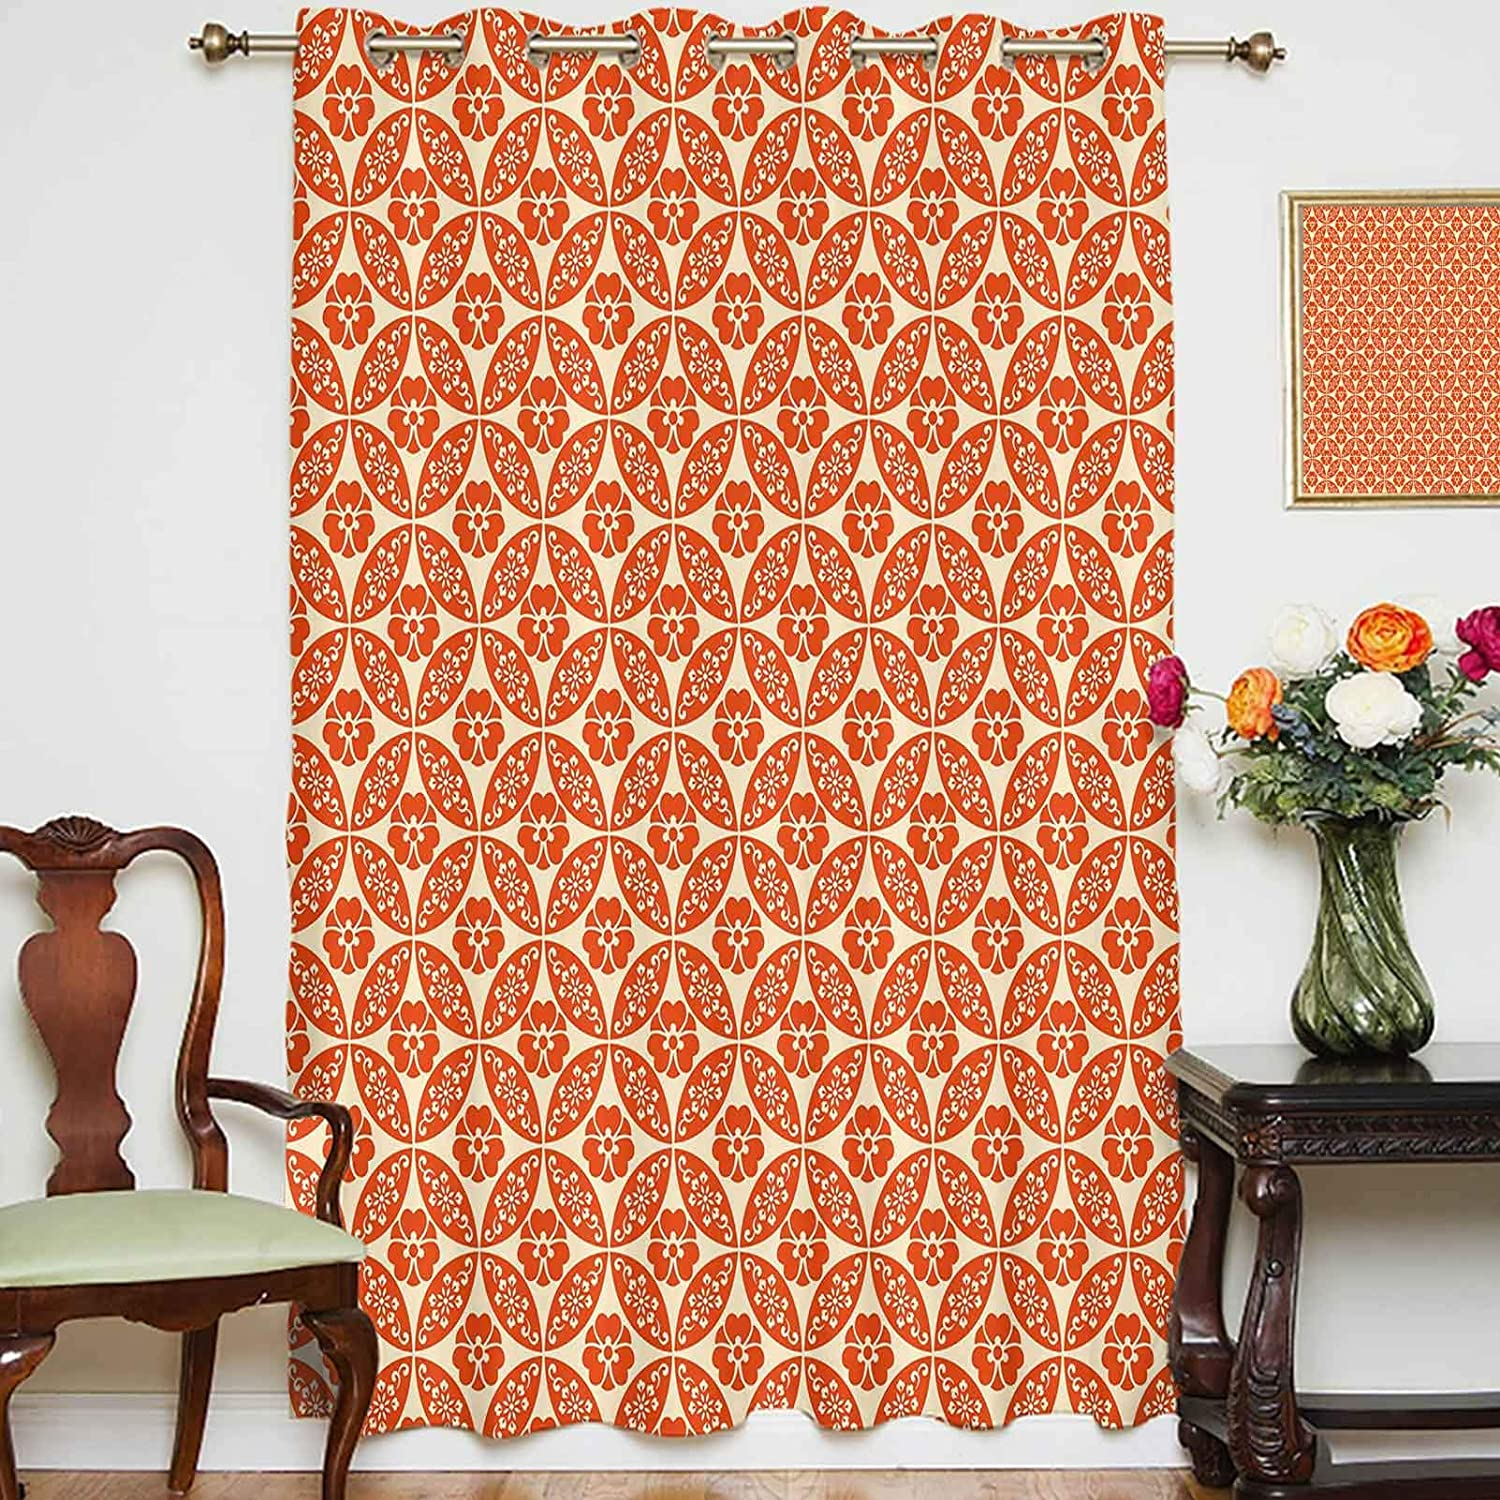 Blackout Branded goods Shading Curtains Japanese Classic Interloc Max 54% OFF Floral Motif